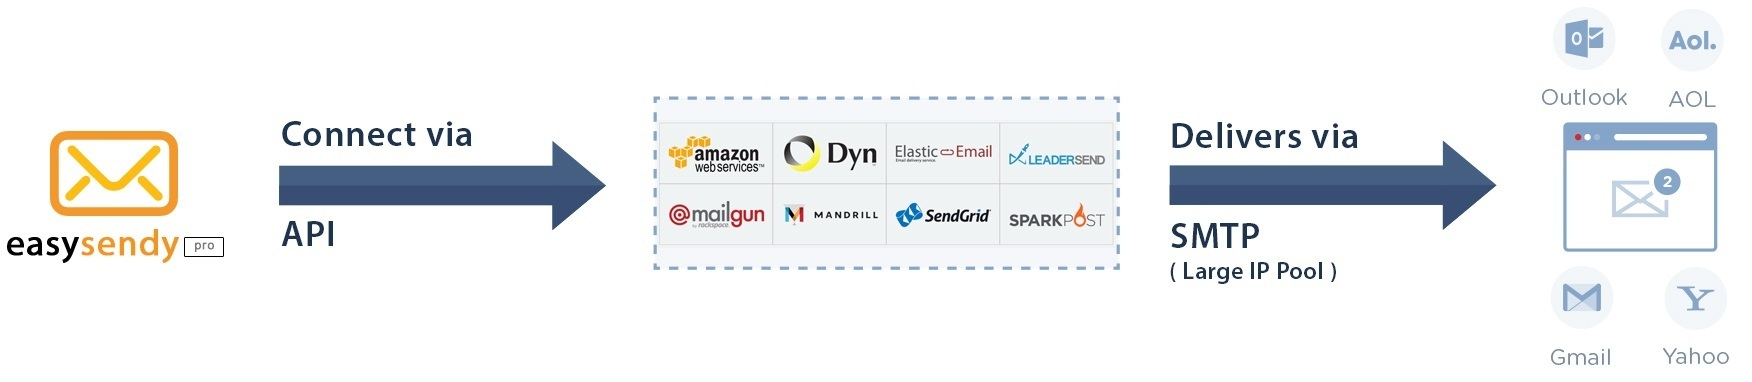 Which is the best email marketing tool or software to send